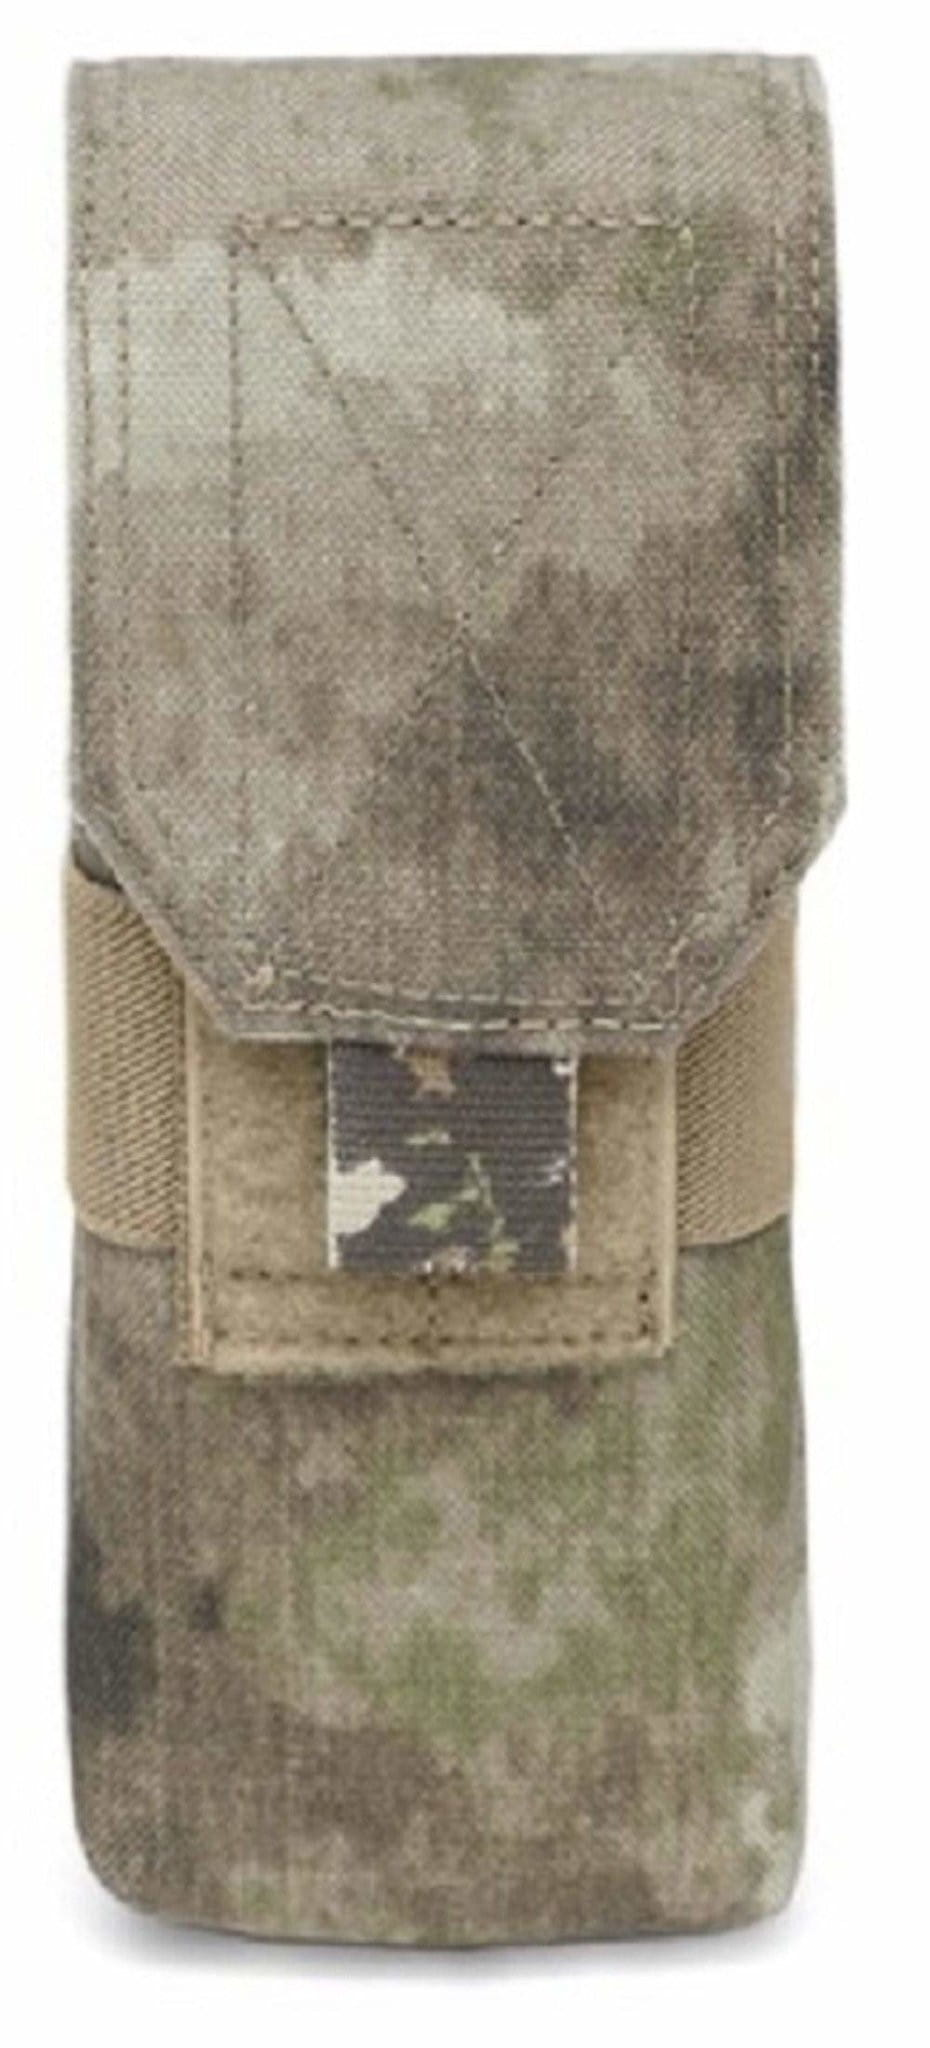 Warrior Assault Systems Single Mag Pouch with Flap M4 - CHK-SHIELD | Outdoor Army - Tactical Gear Shop